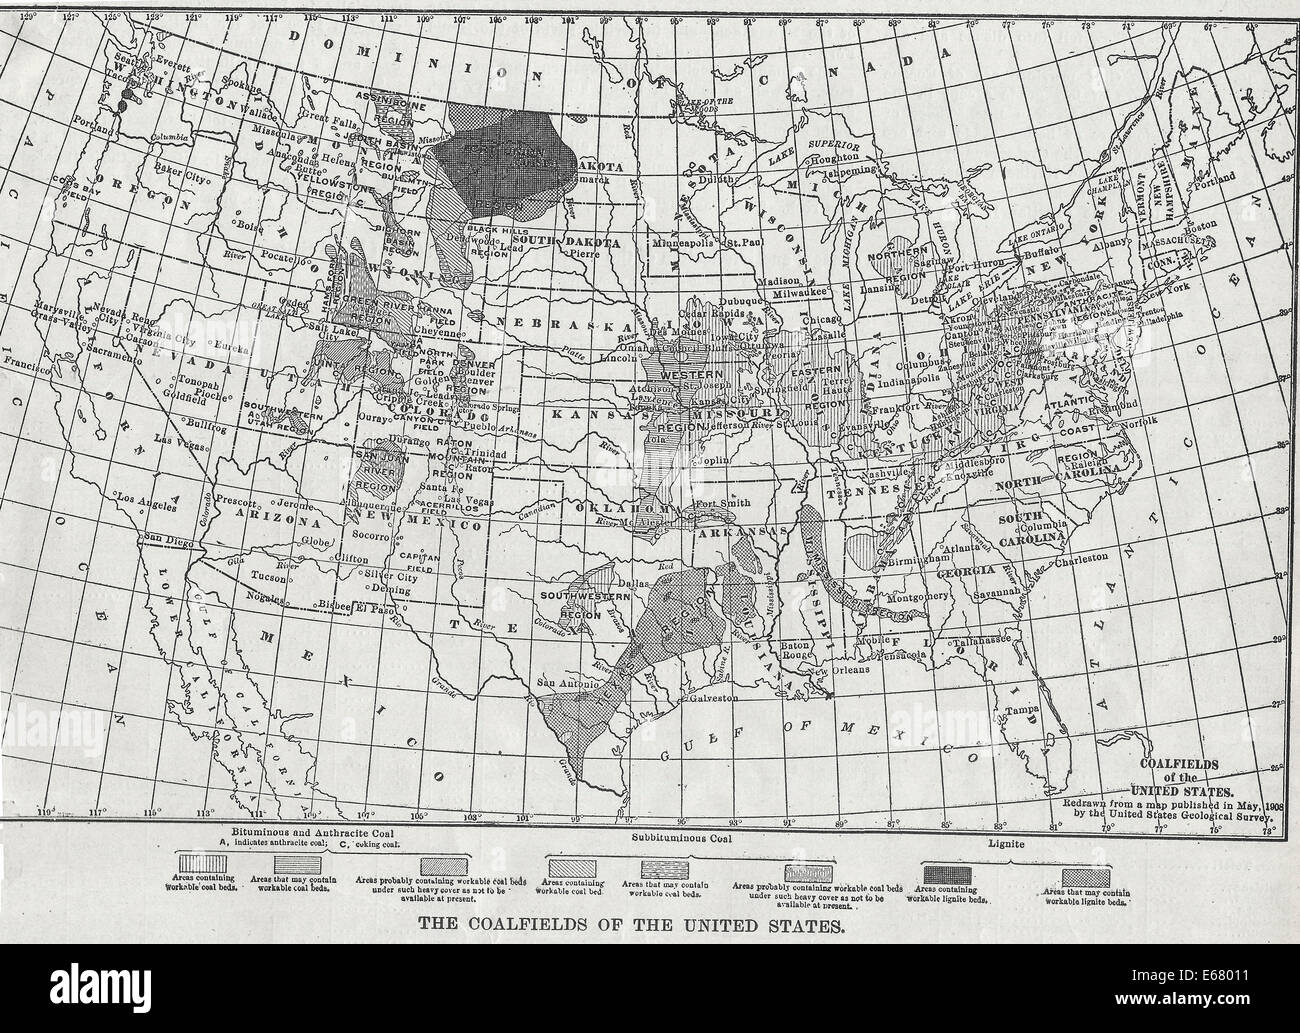 Map Of The Coalfields Of The United States 1908 Stock Photo - Us-map-1908